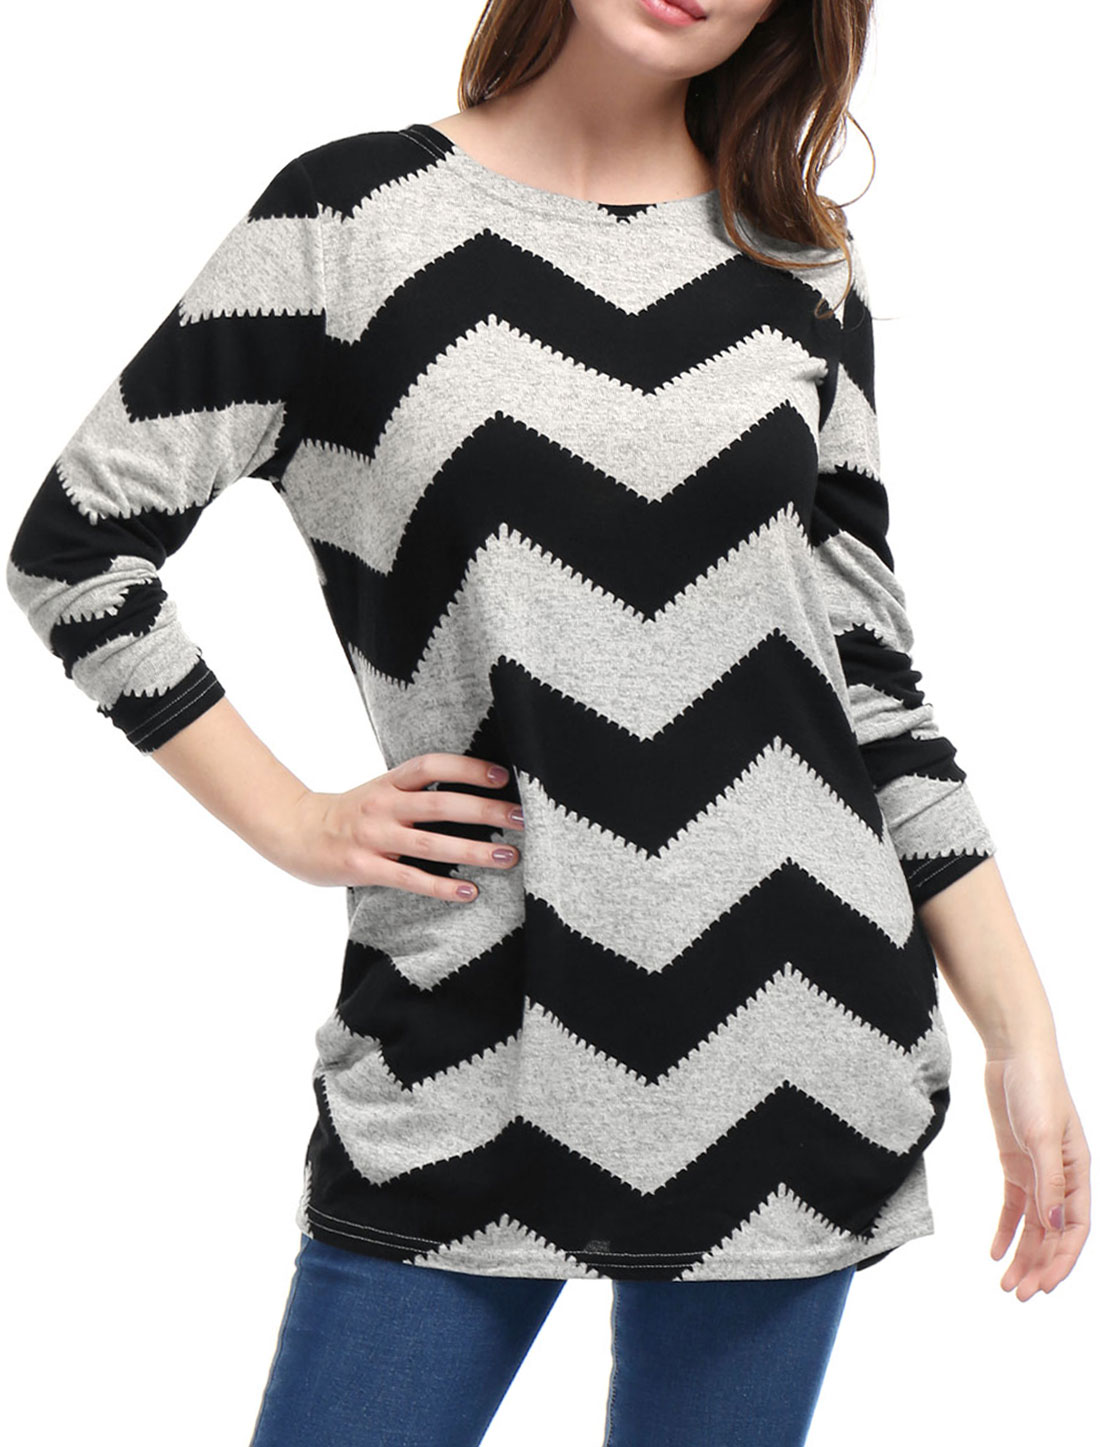 Woman Zig-Zag Pattern Knitted Loose Tunic Shirt Black Gray S